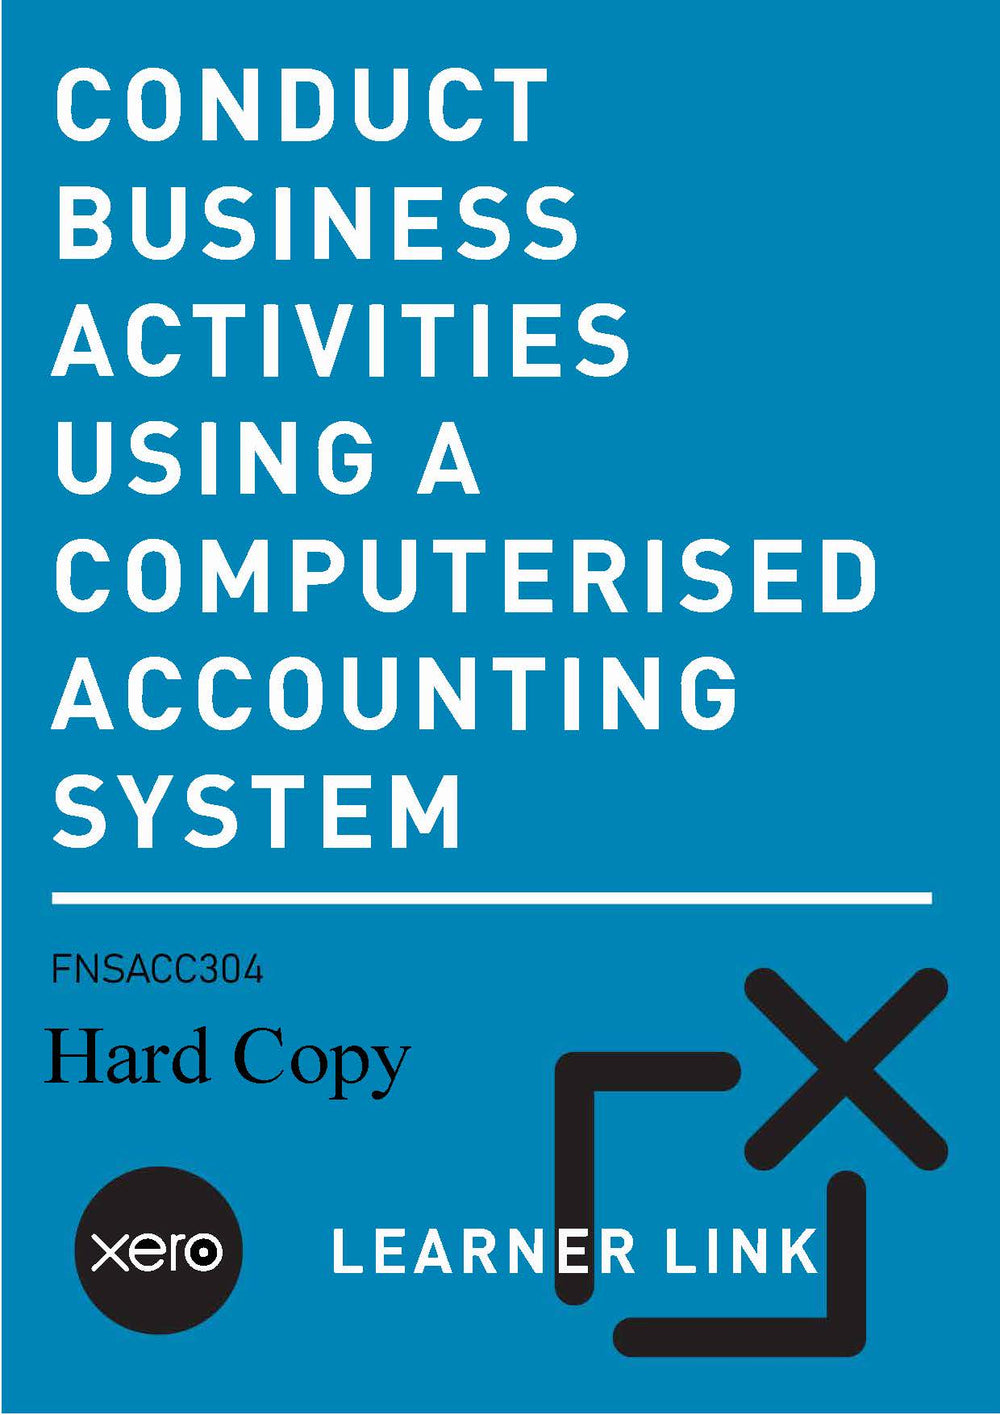 A07: FNSACC304 Xero Conduct Business Activities using a Computerised Accounting System 2nd Edition